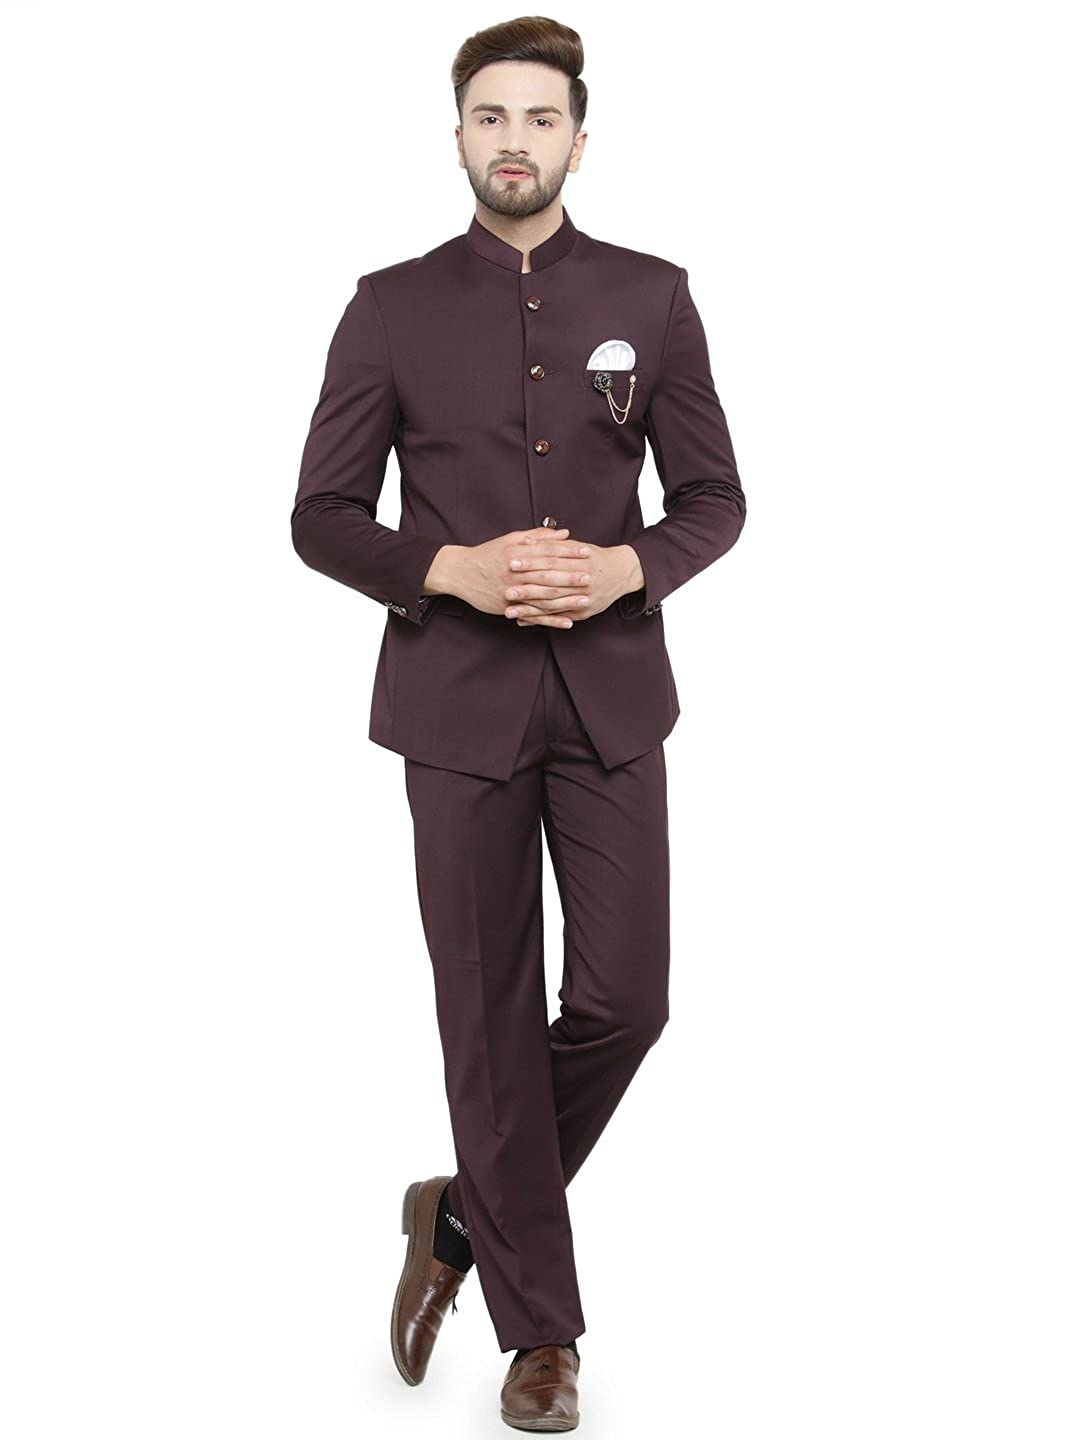 Royal Wine Bandh Gala Men S Designer Combo Suit For Men S Luxurazi Best Price With Best Deal In Your City